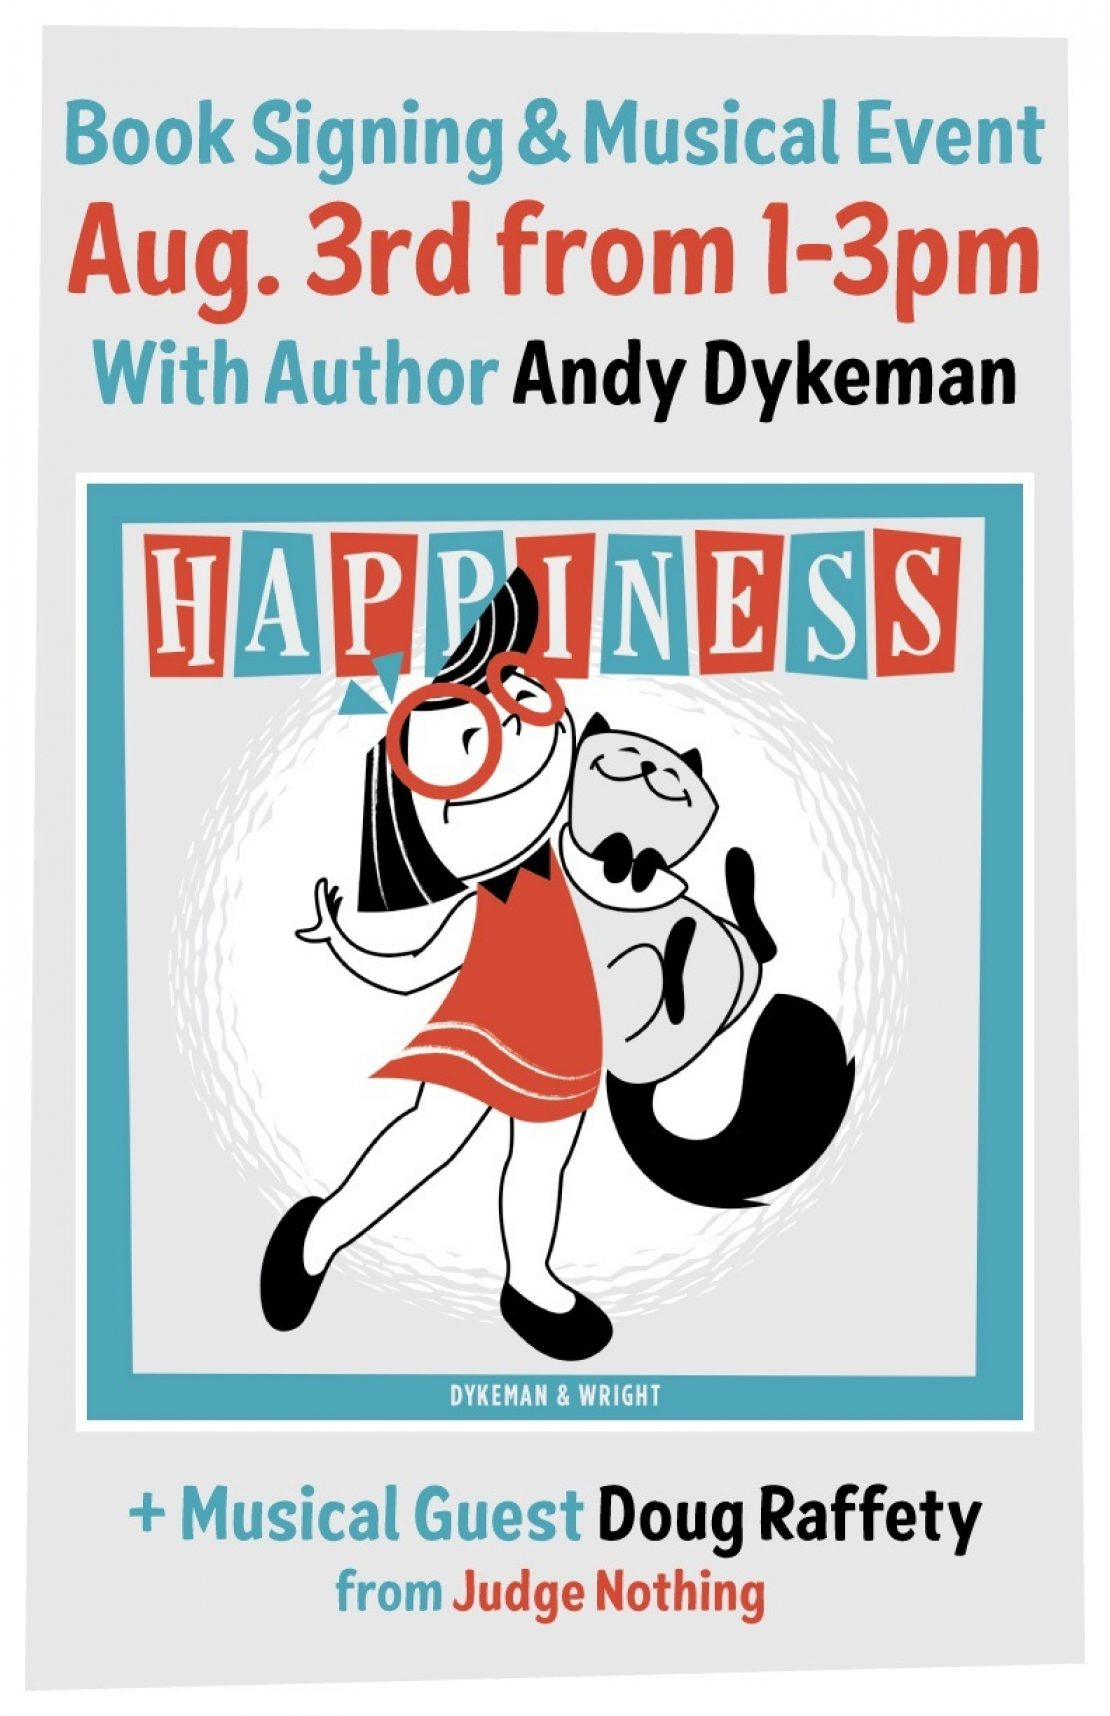 Happiness book event on Aug. 3rd from 1-3pm